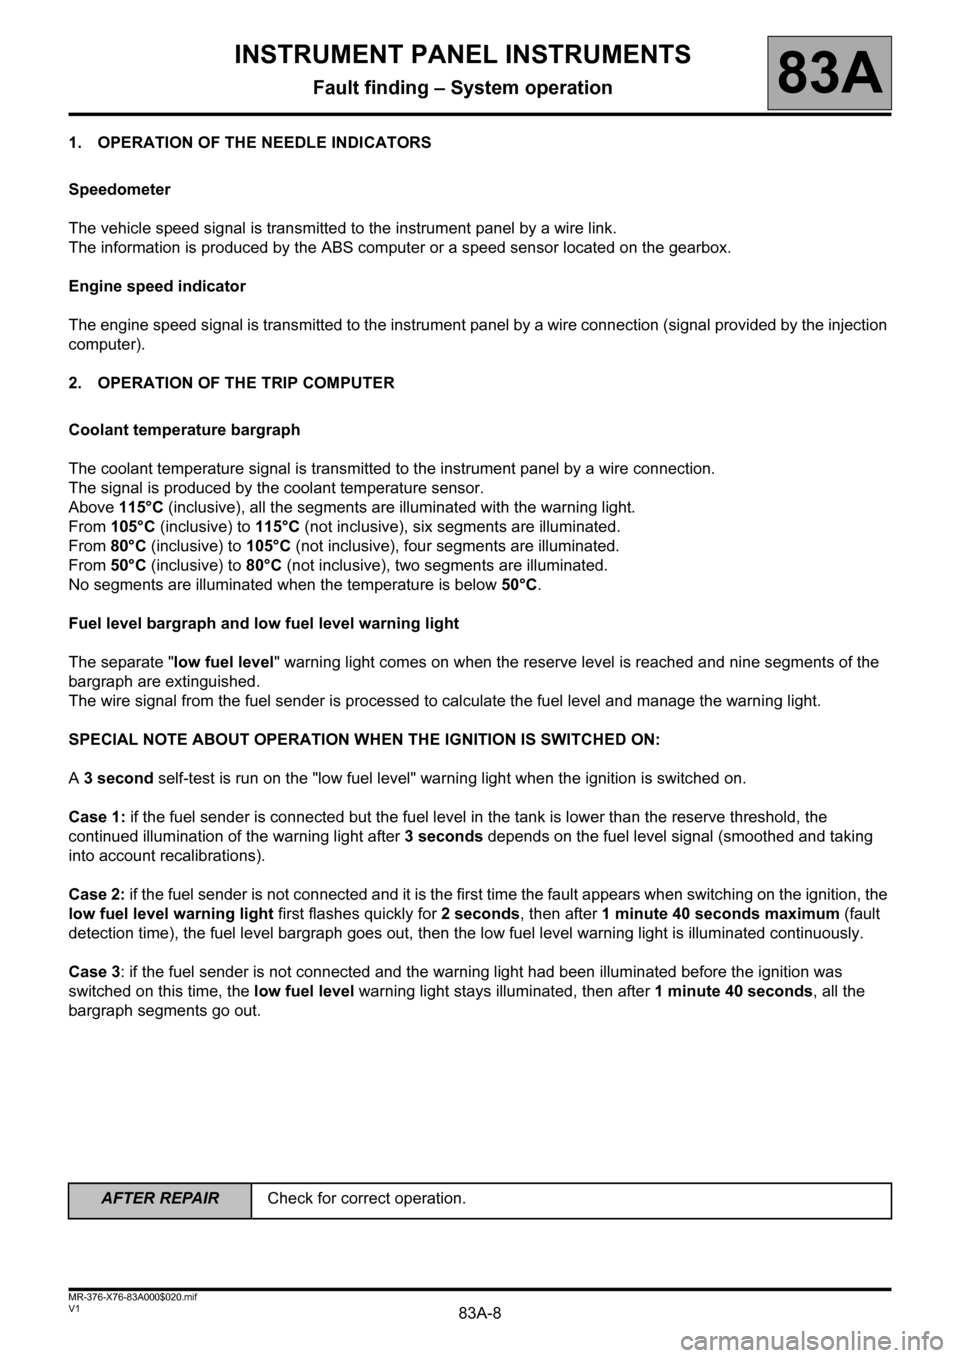 RENAULT KANGOO 2013 X61 / 2.G Instrument Panel Instruments Workshop Manual, Page 8